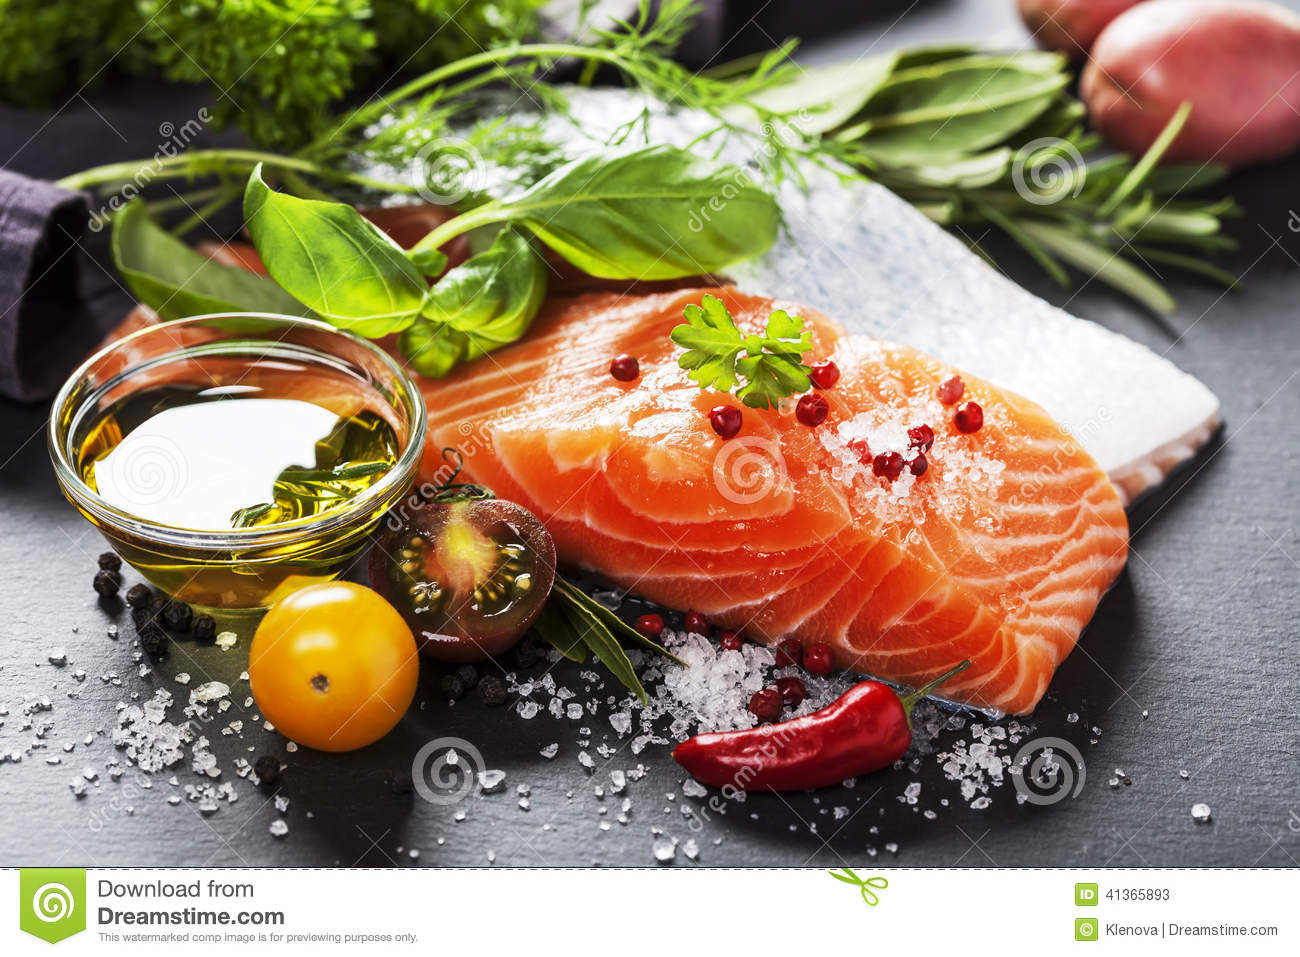 Delicious portion of fresh salmon fillet with aromatic herbs,